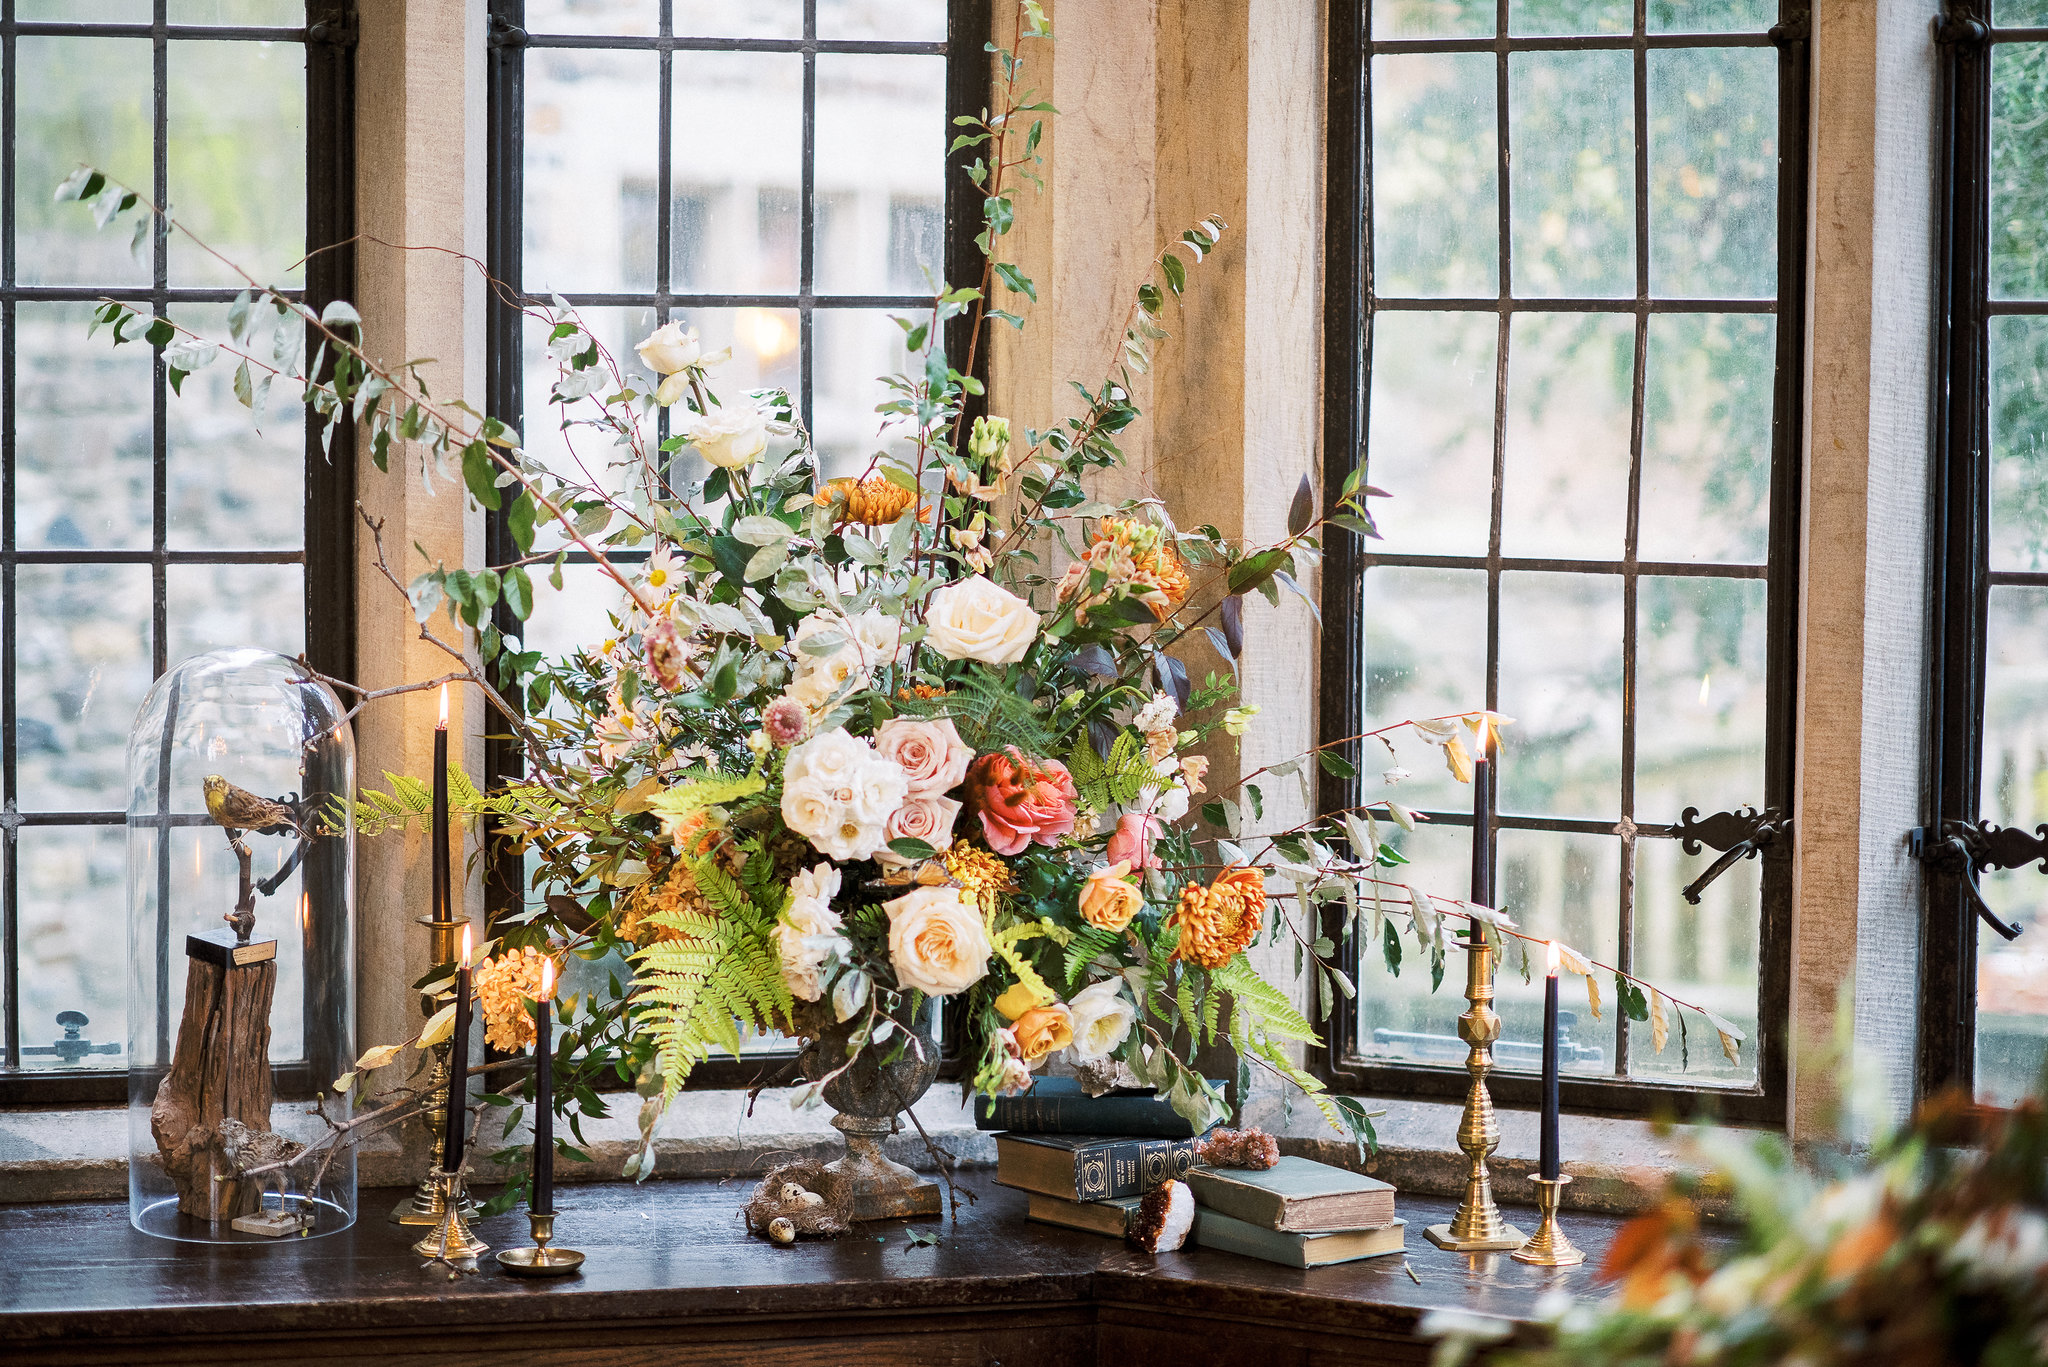 Rachel Pearlman Photography, Cottage Flowers